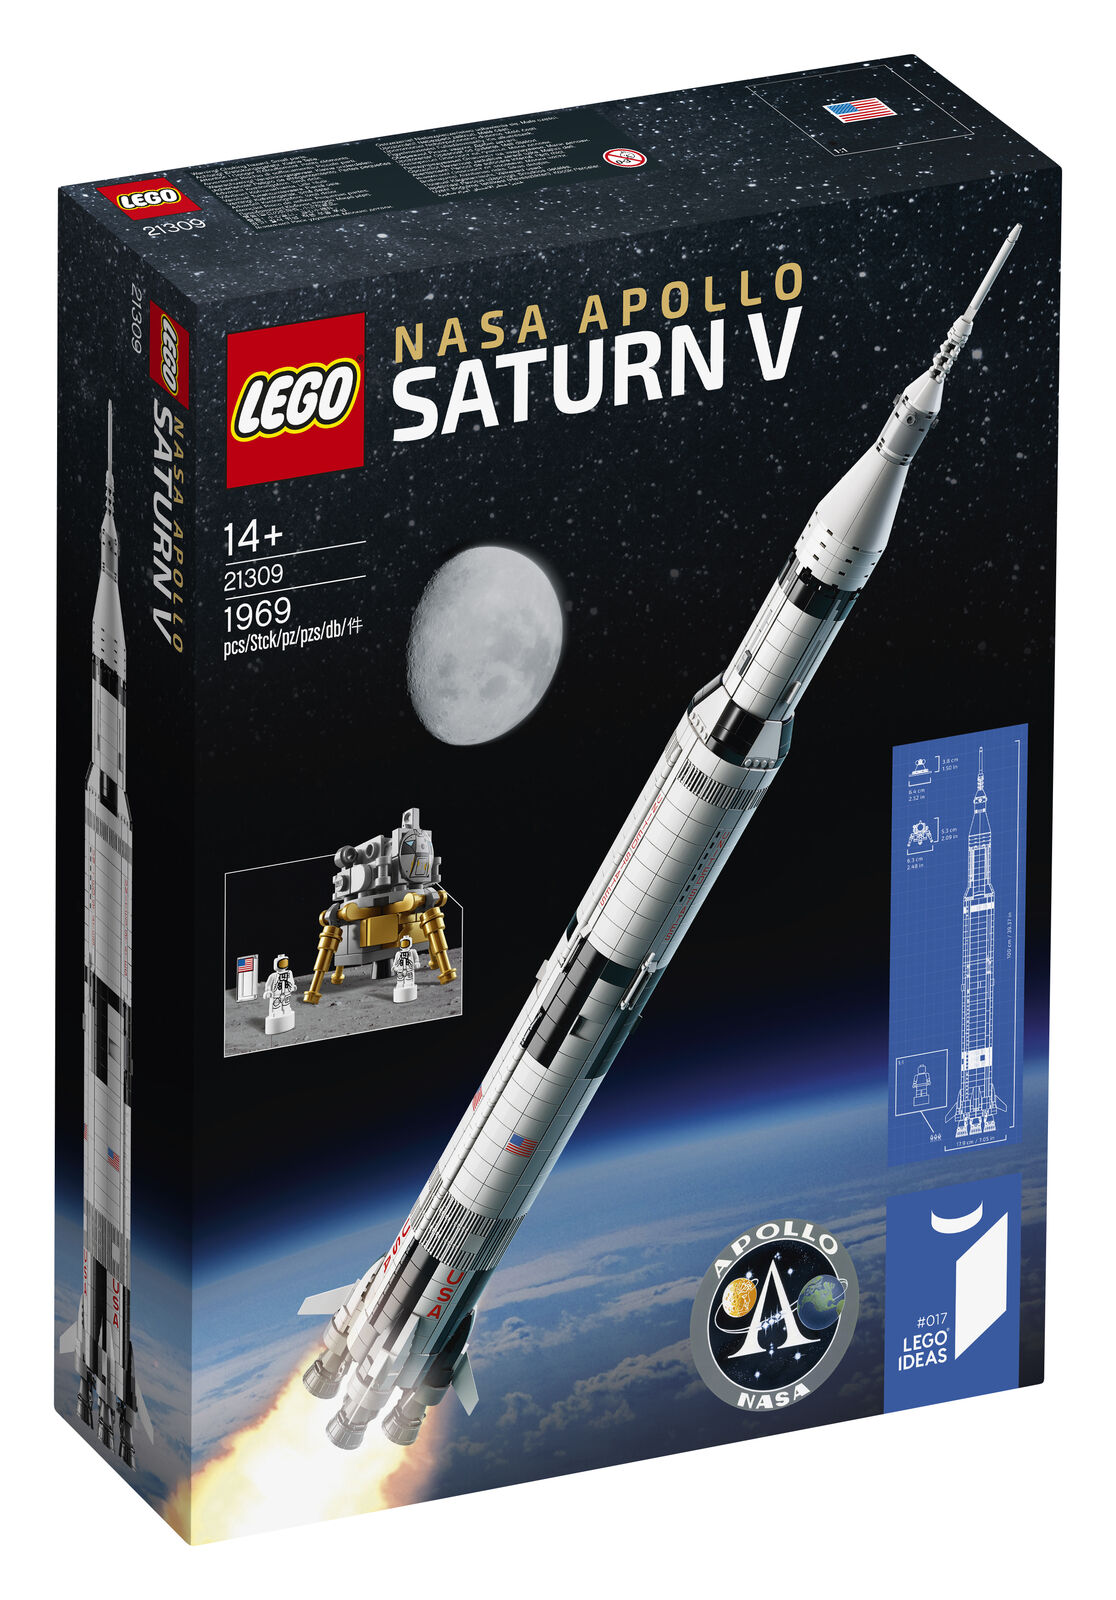 LEGO® ideas 21309 LEGO® NASA Apollo Saturn V NEU OVP NEW MISB NRFB